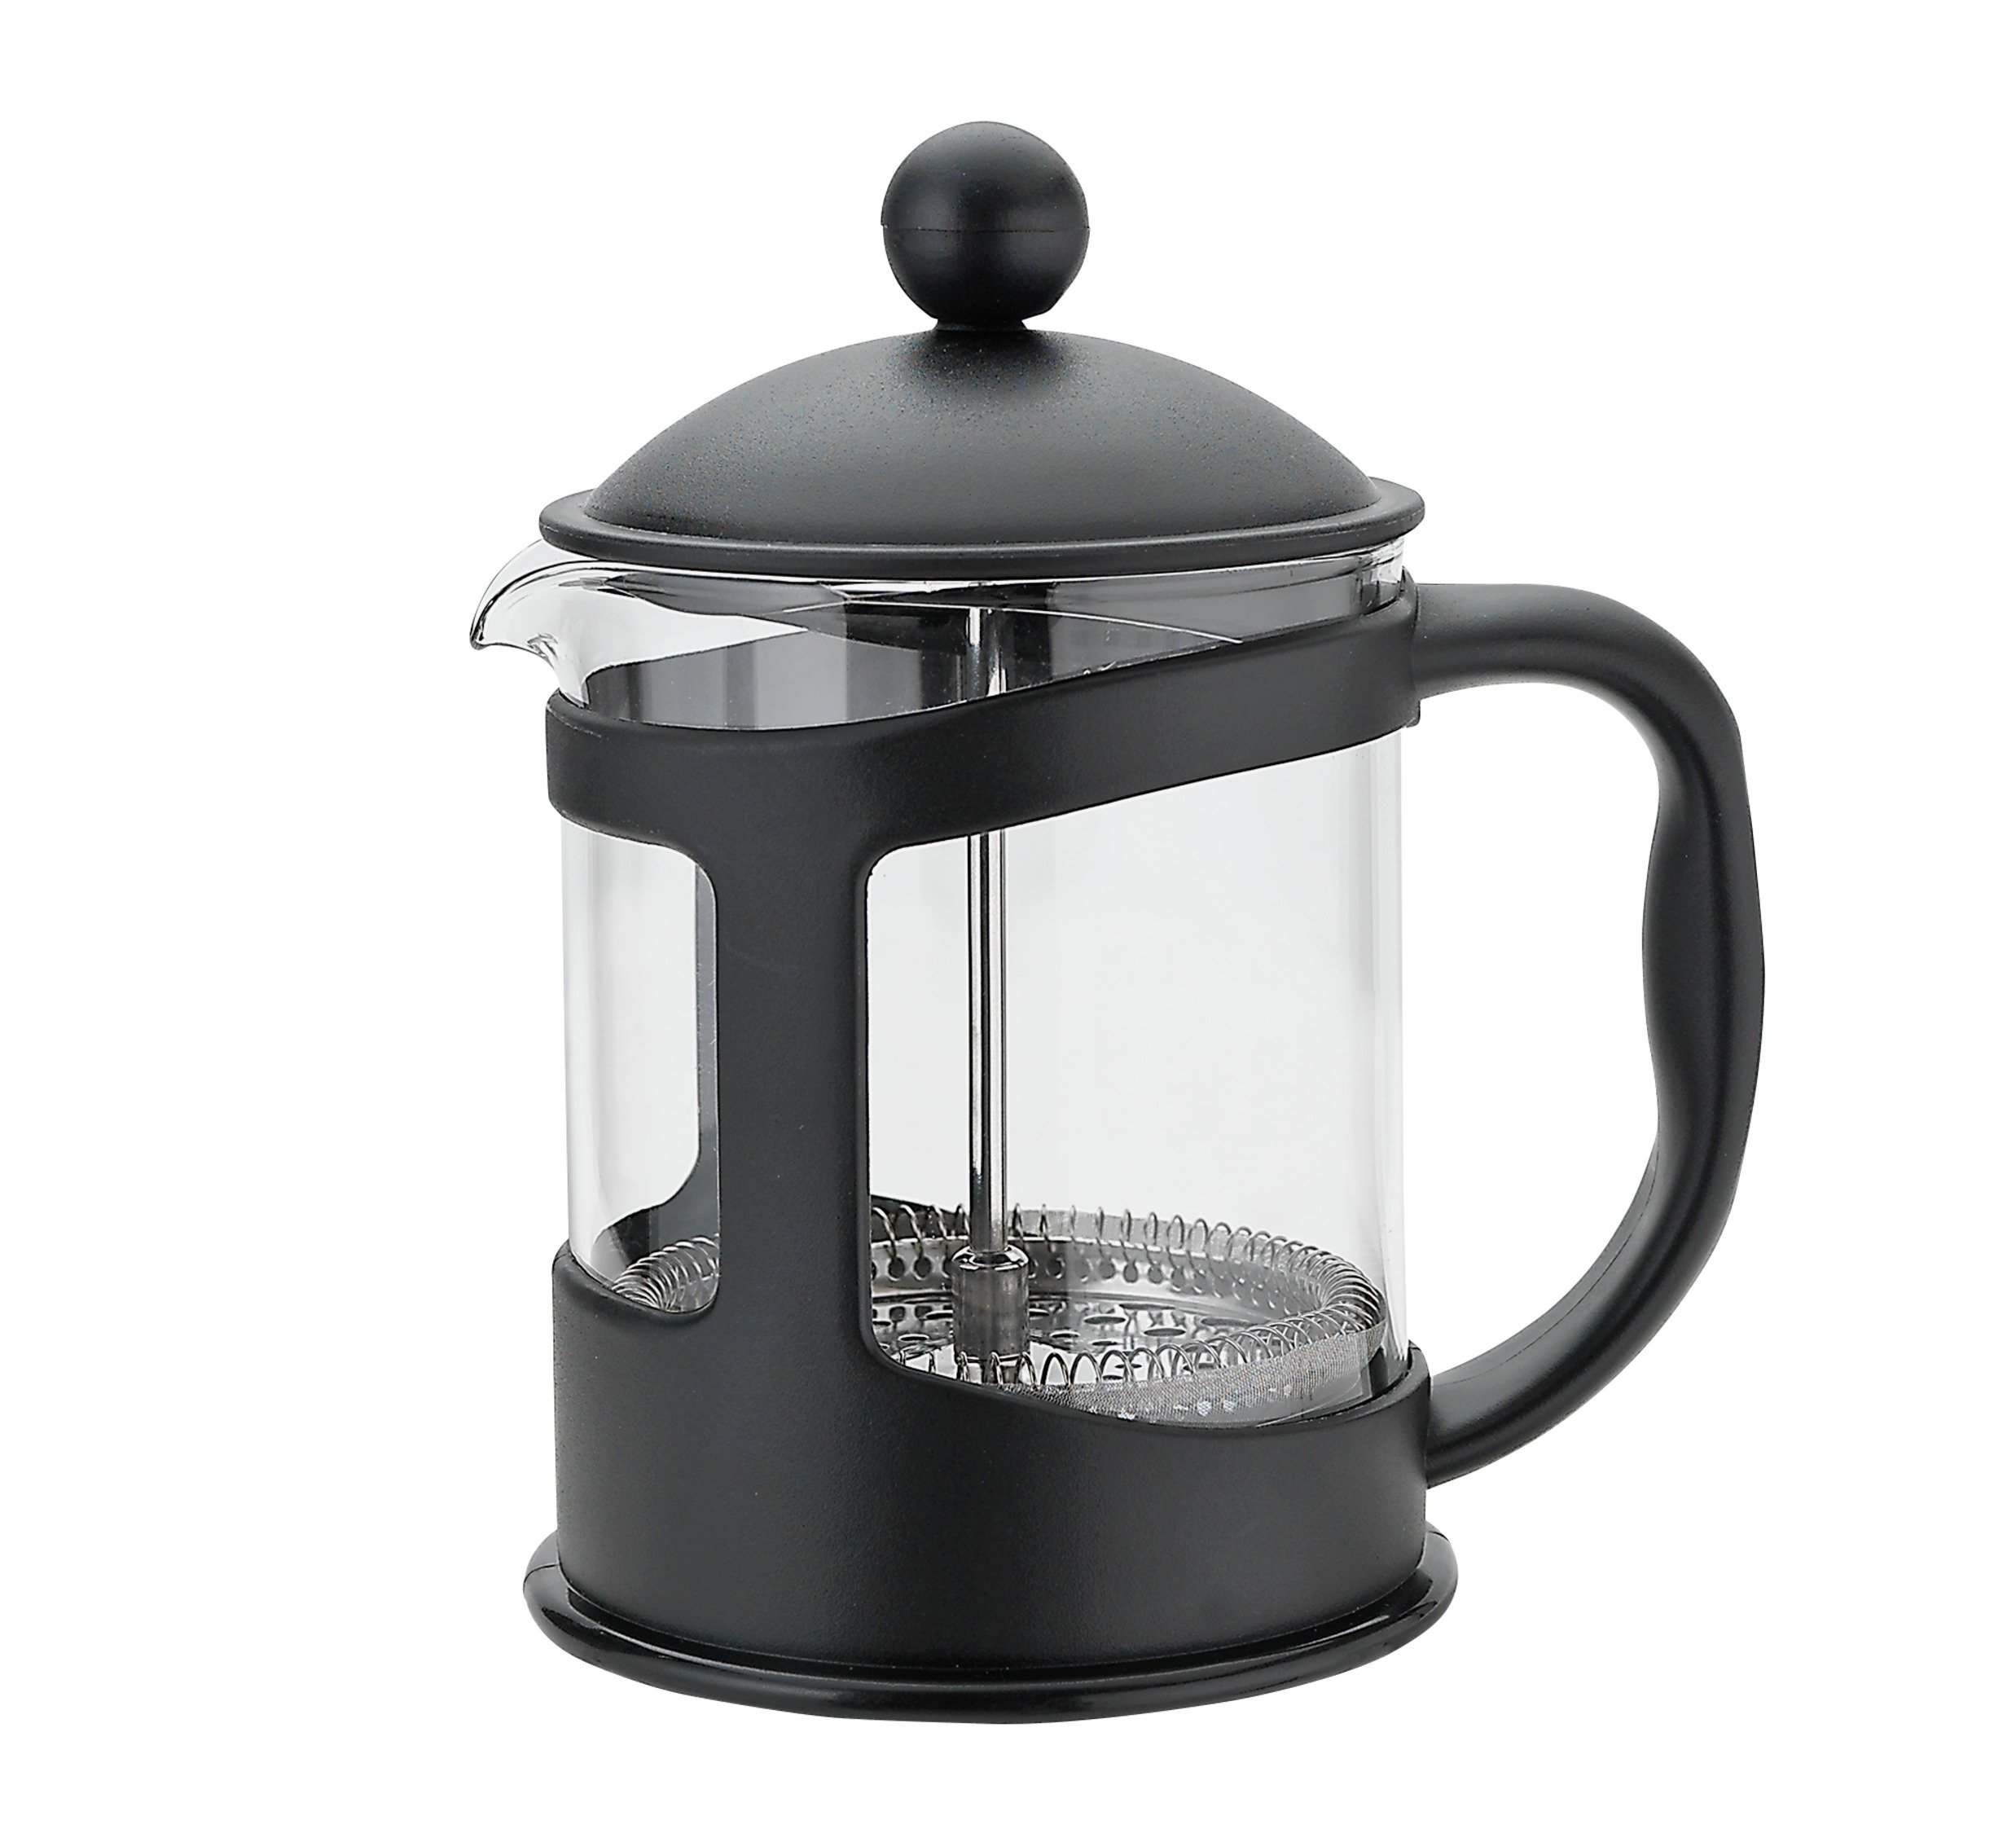 cafetiere 4 cup